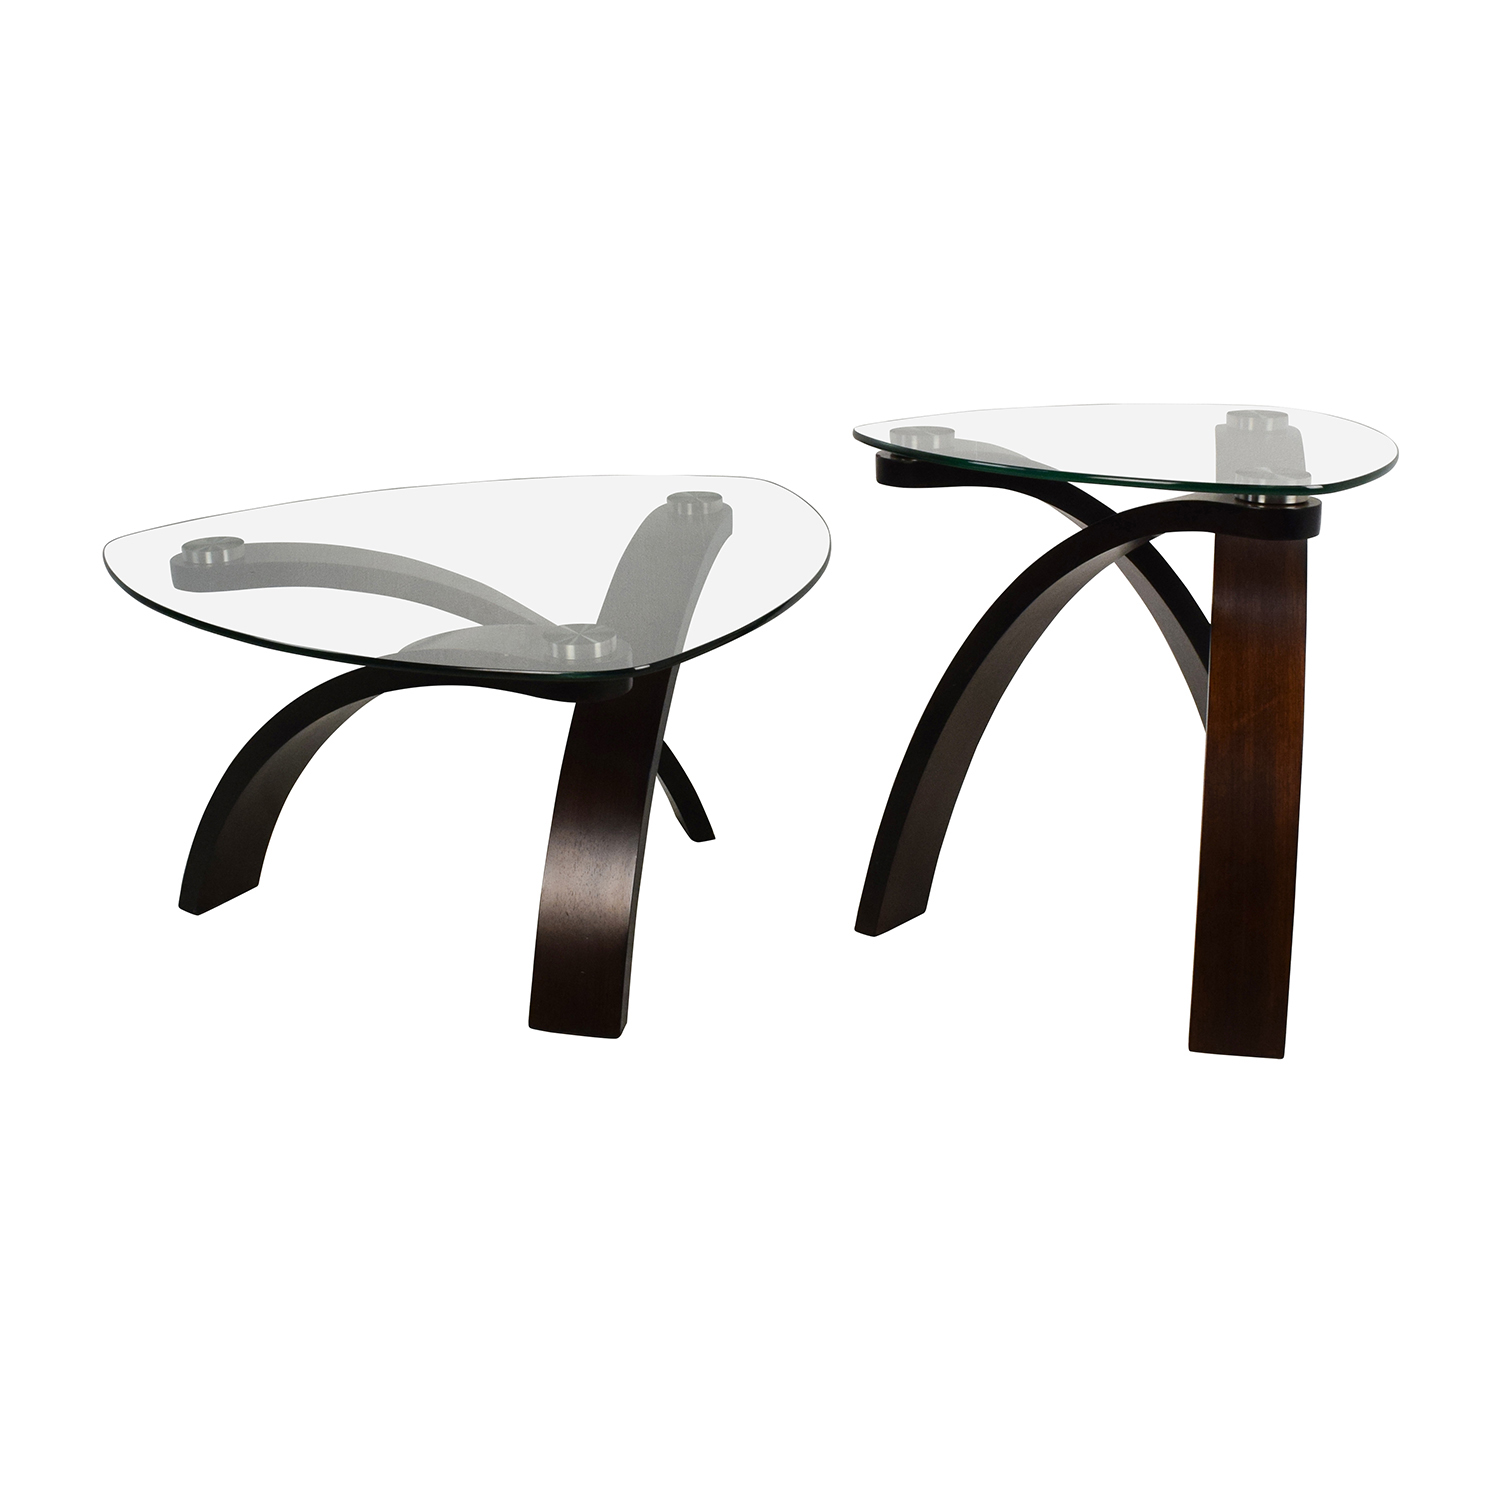 Raymour and Flanigan Raymour & Flanigan Allure Coffee Table Set coupon